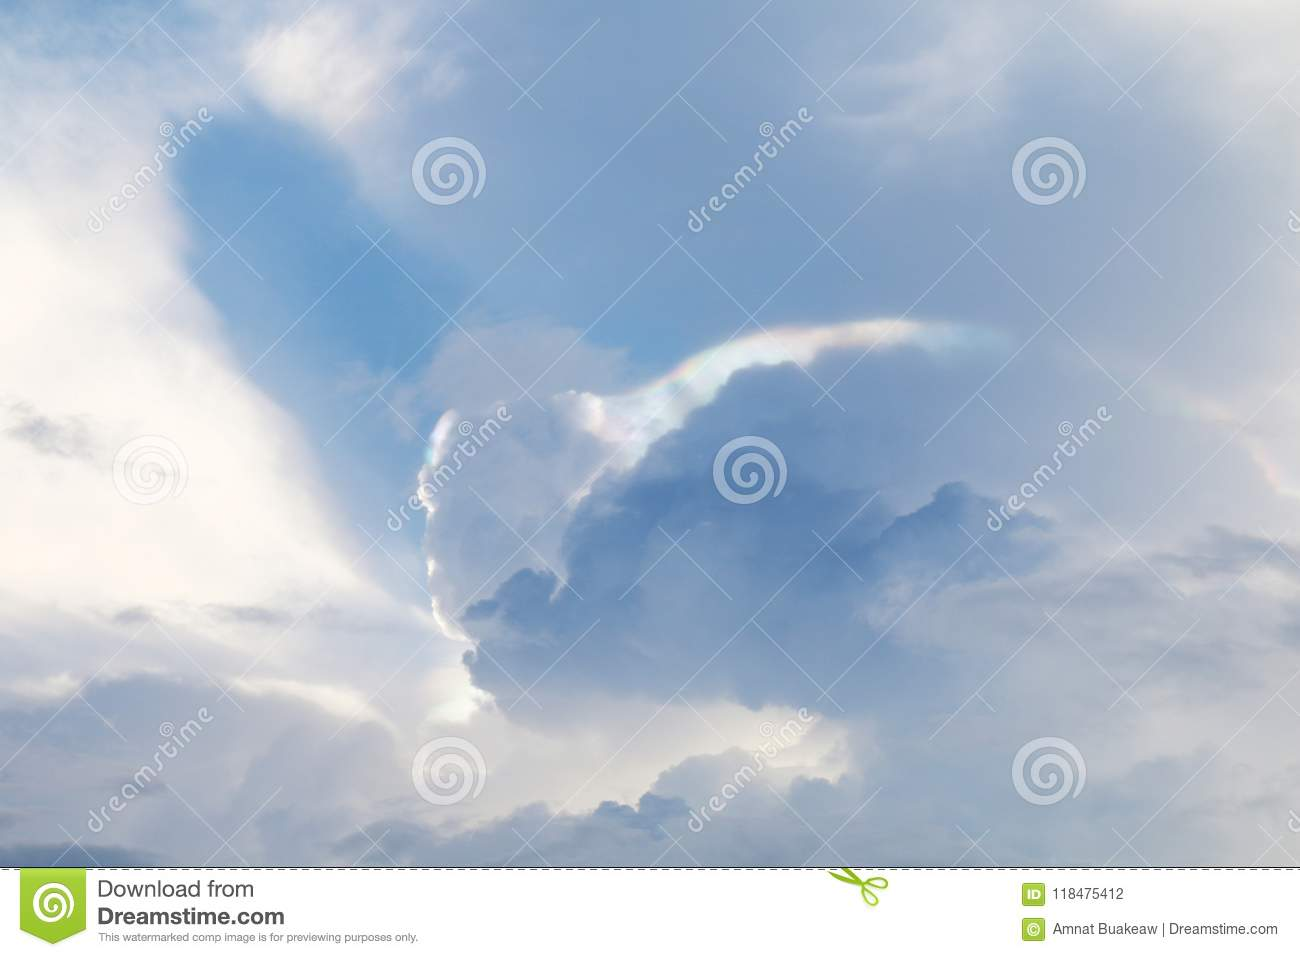 strange sky and light over spectrum, sky cloud background stock